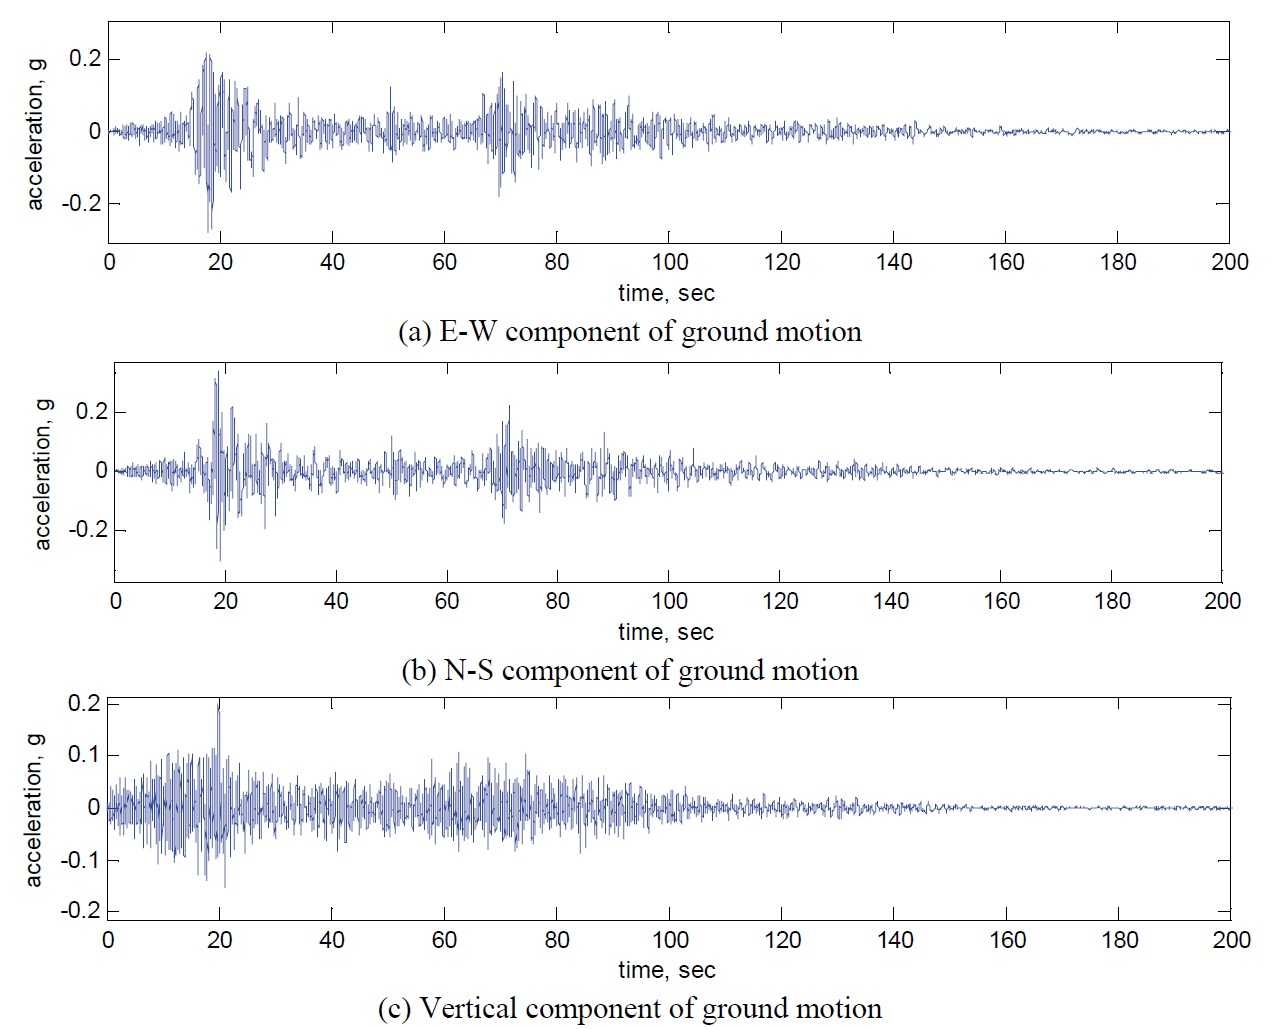 Recorded accelerations from ICA2 station (Retrieved from Elnashai et al, 2008).